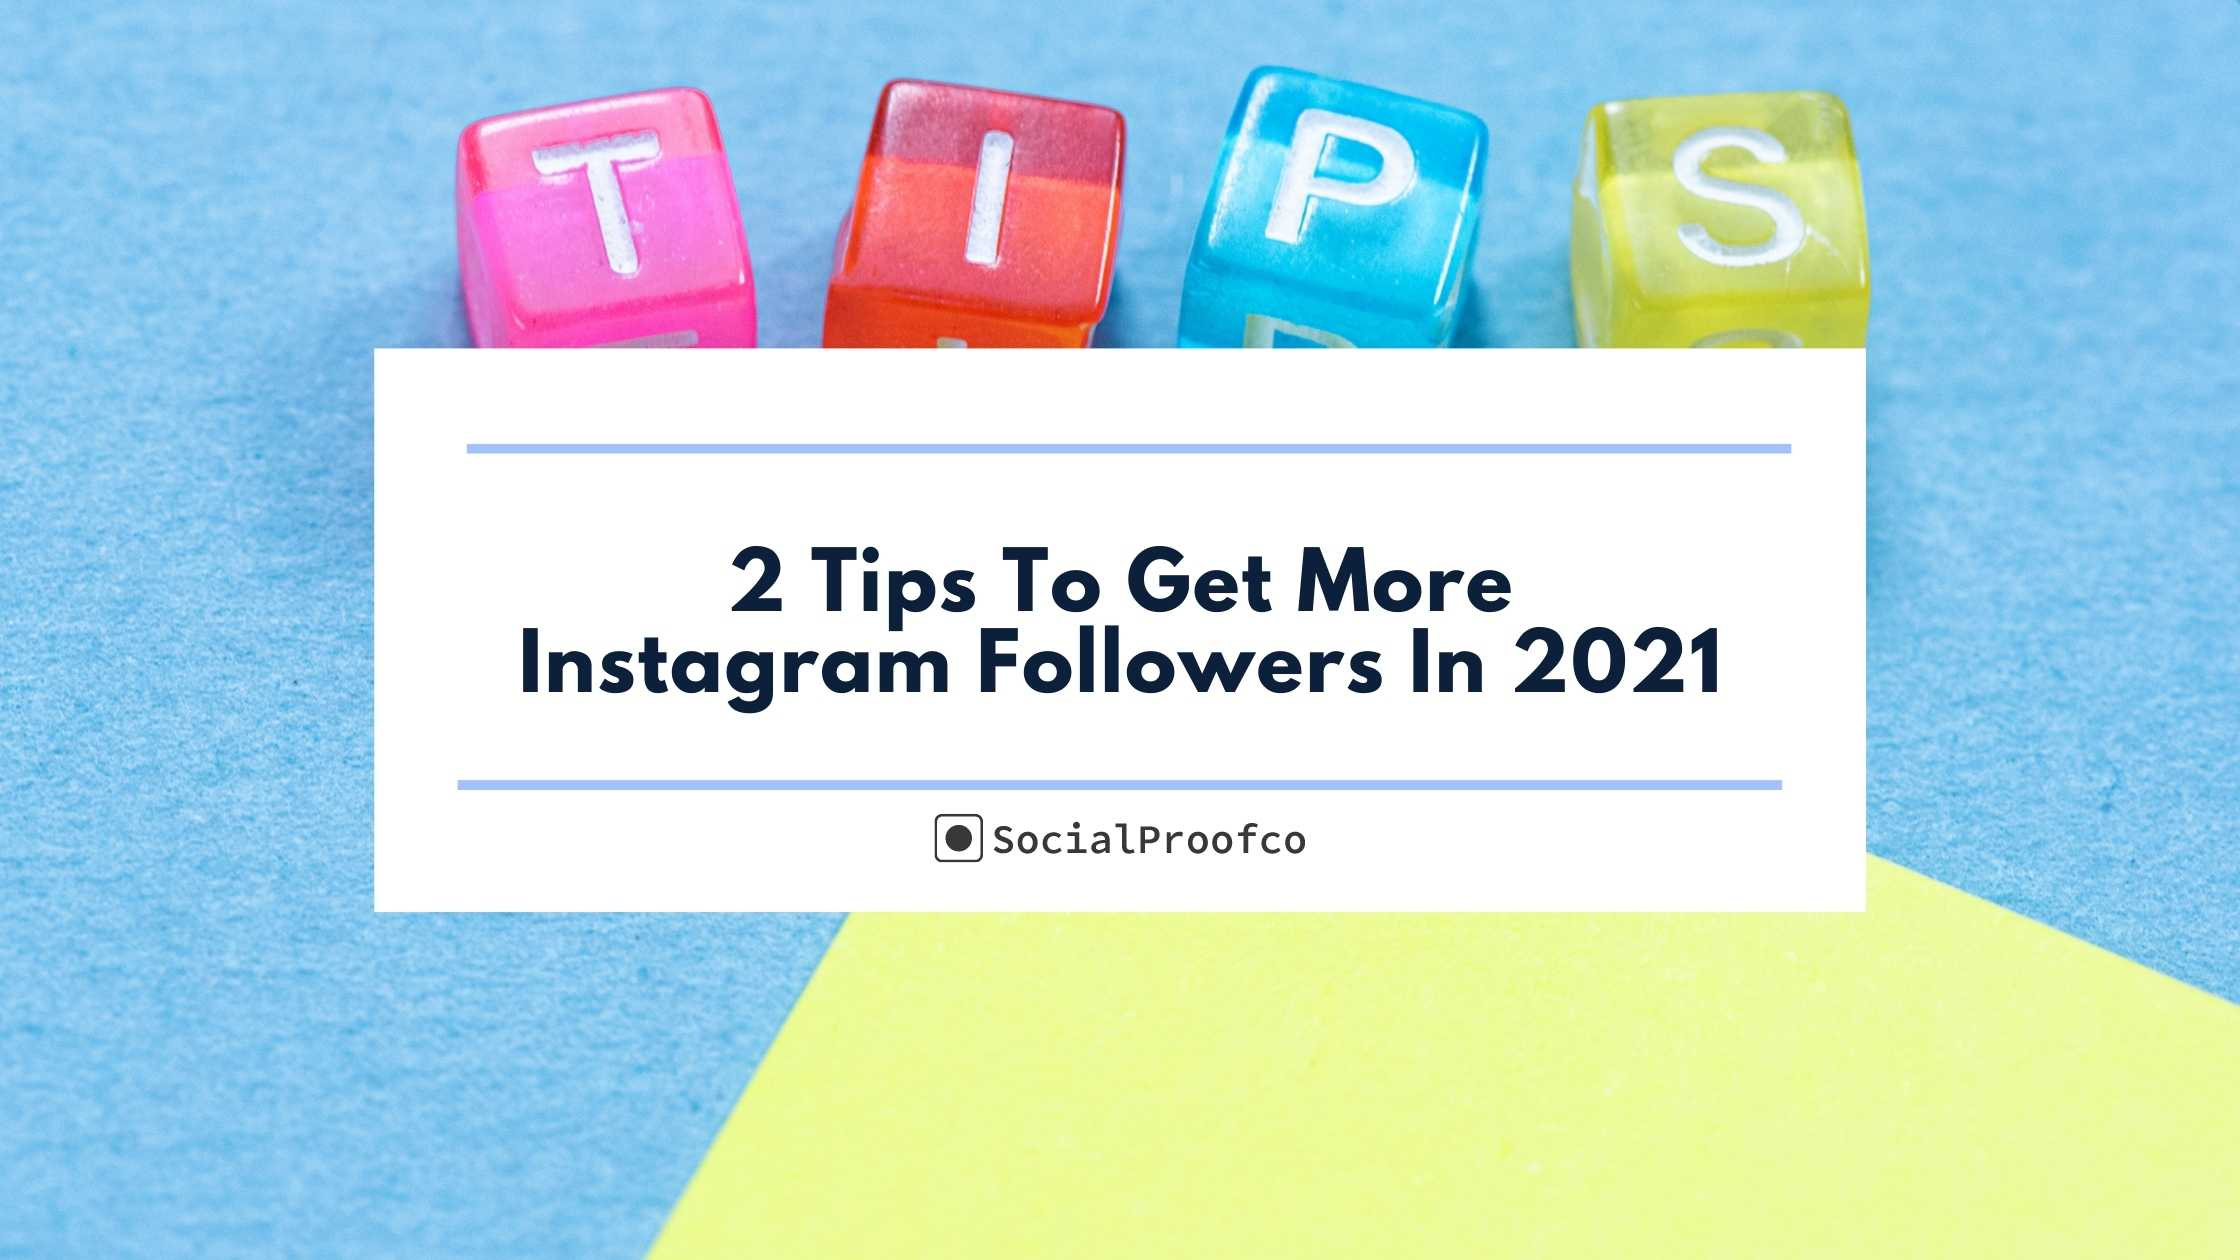 2 Tips To Get More Instagram Followers